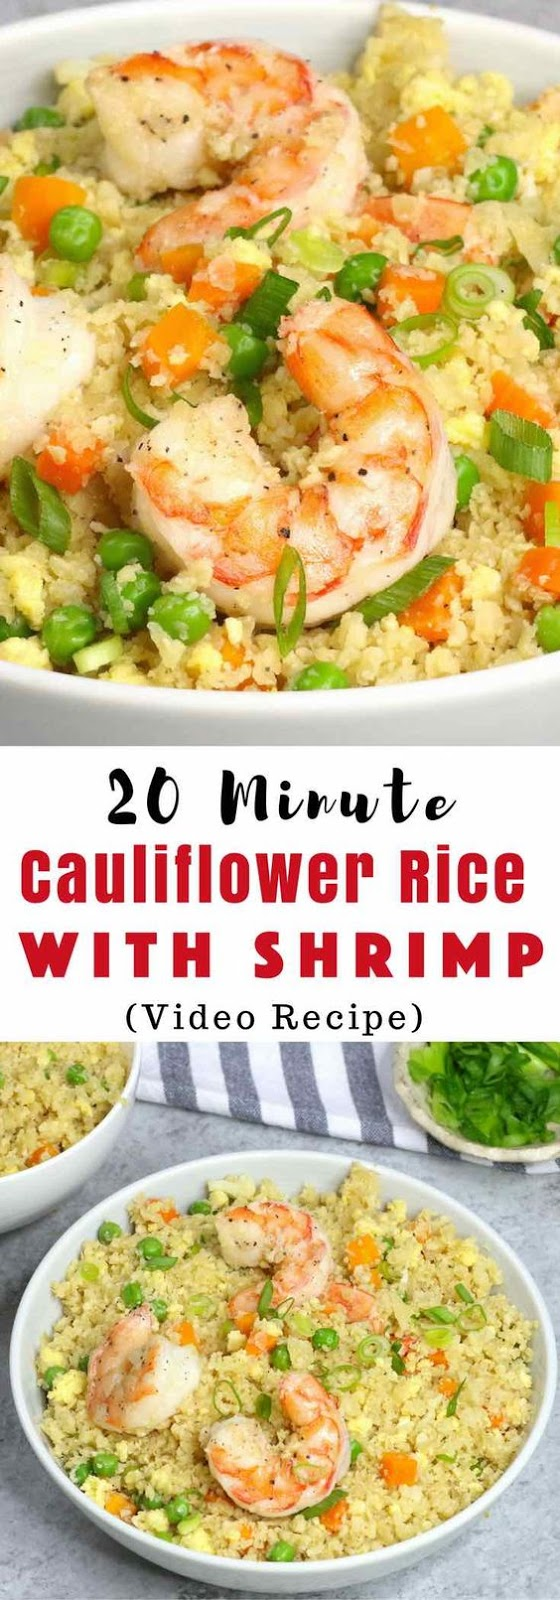 20 Minute Shrimp Fried Cauliflower Rice